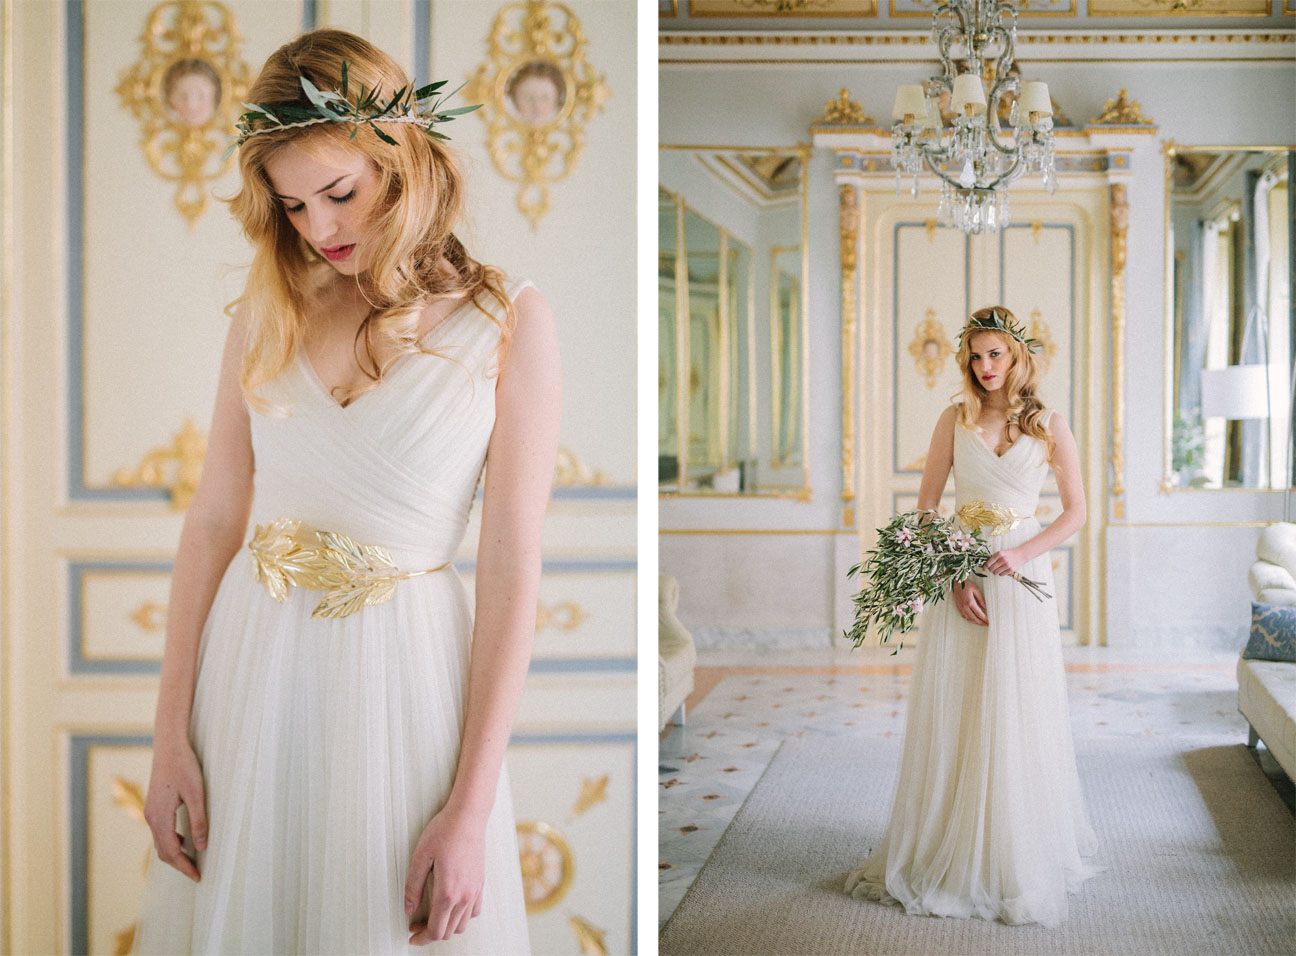 styled shoot in Valencia wedding photographer